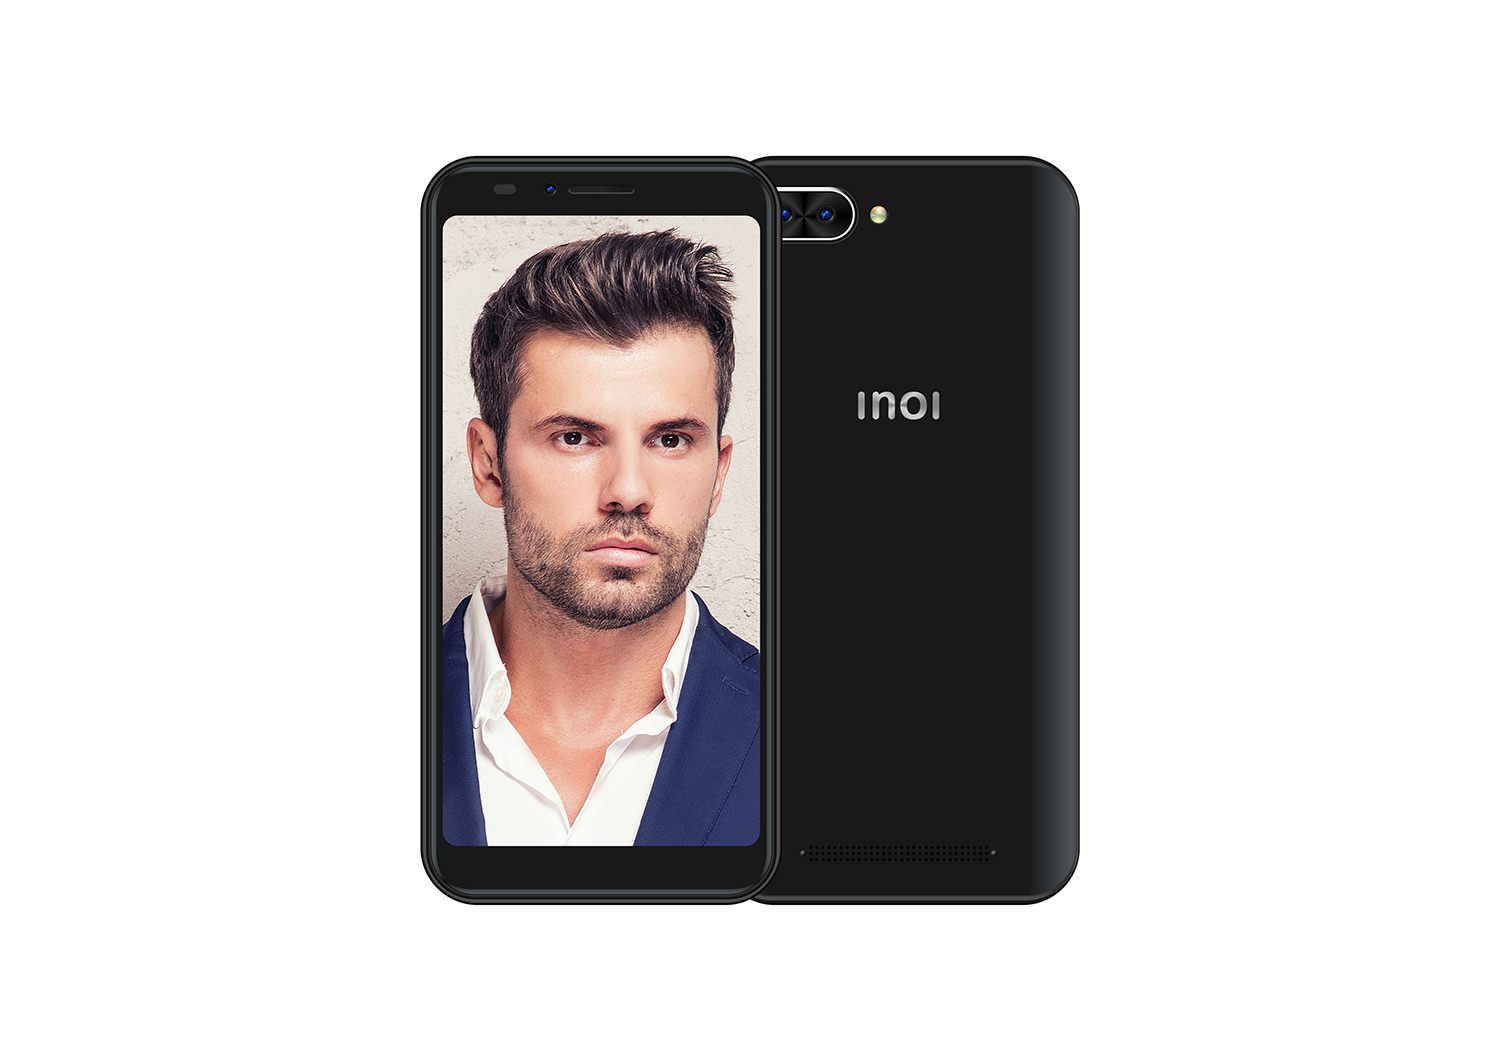 Фото - Смартфон INOI 6i Black смартфон inoi 2 1 8gb black